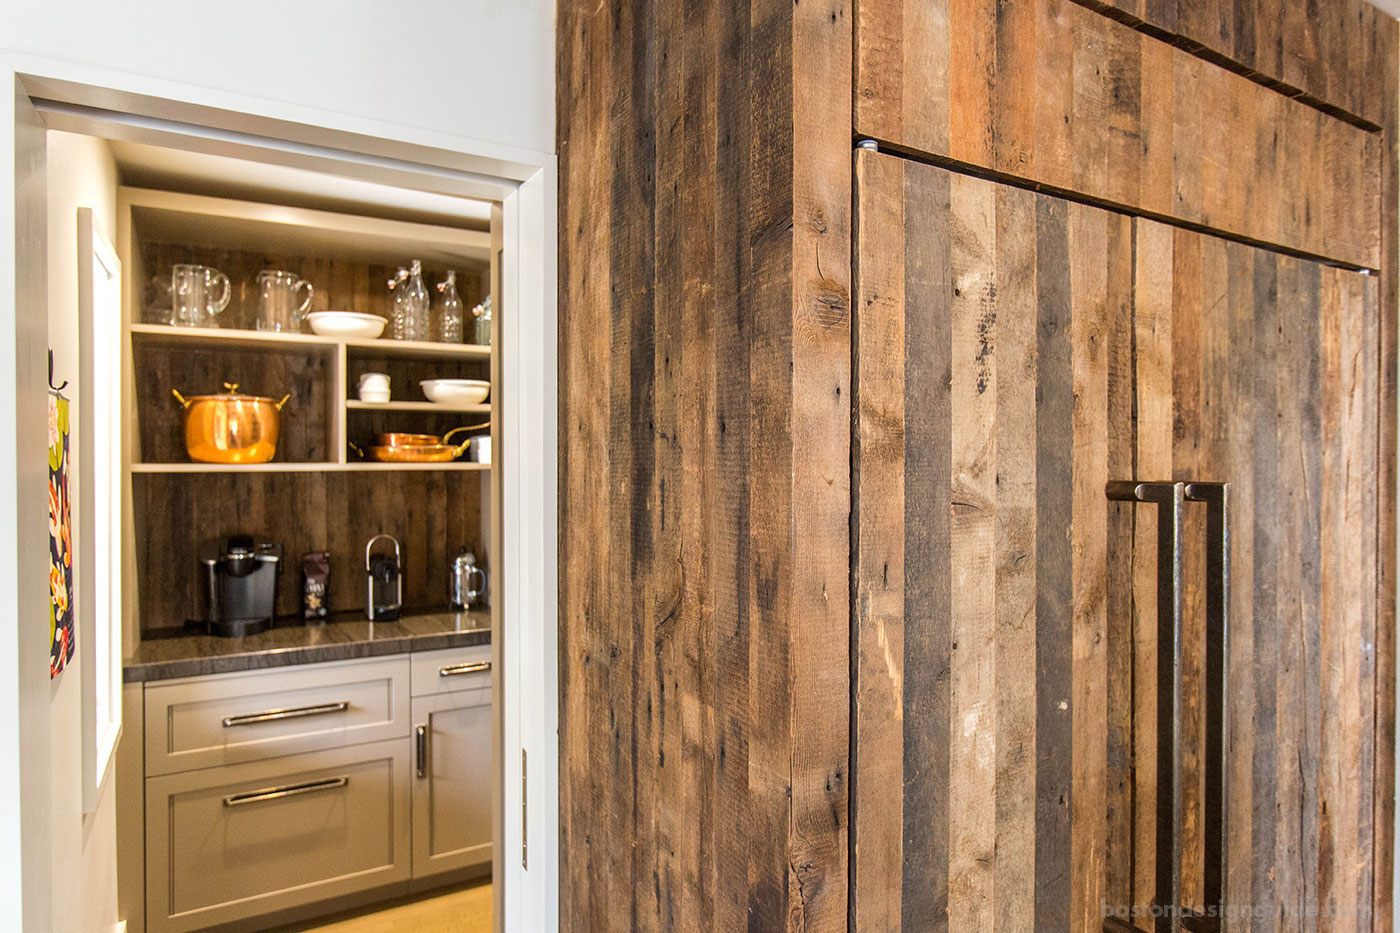 5 Dream Kitchen Must Haves: Dream Kitchen Must-Have: Walk-In Pantry